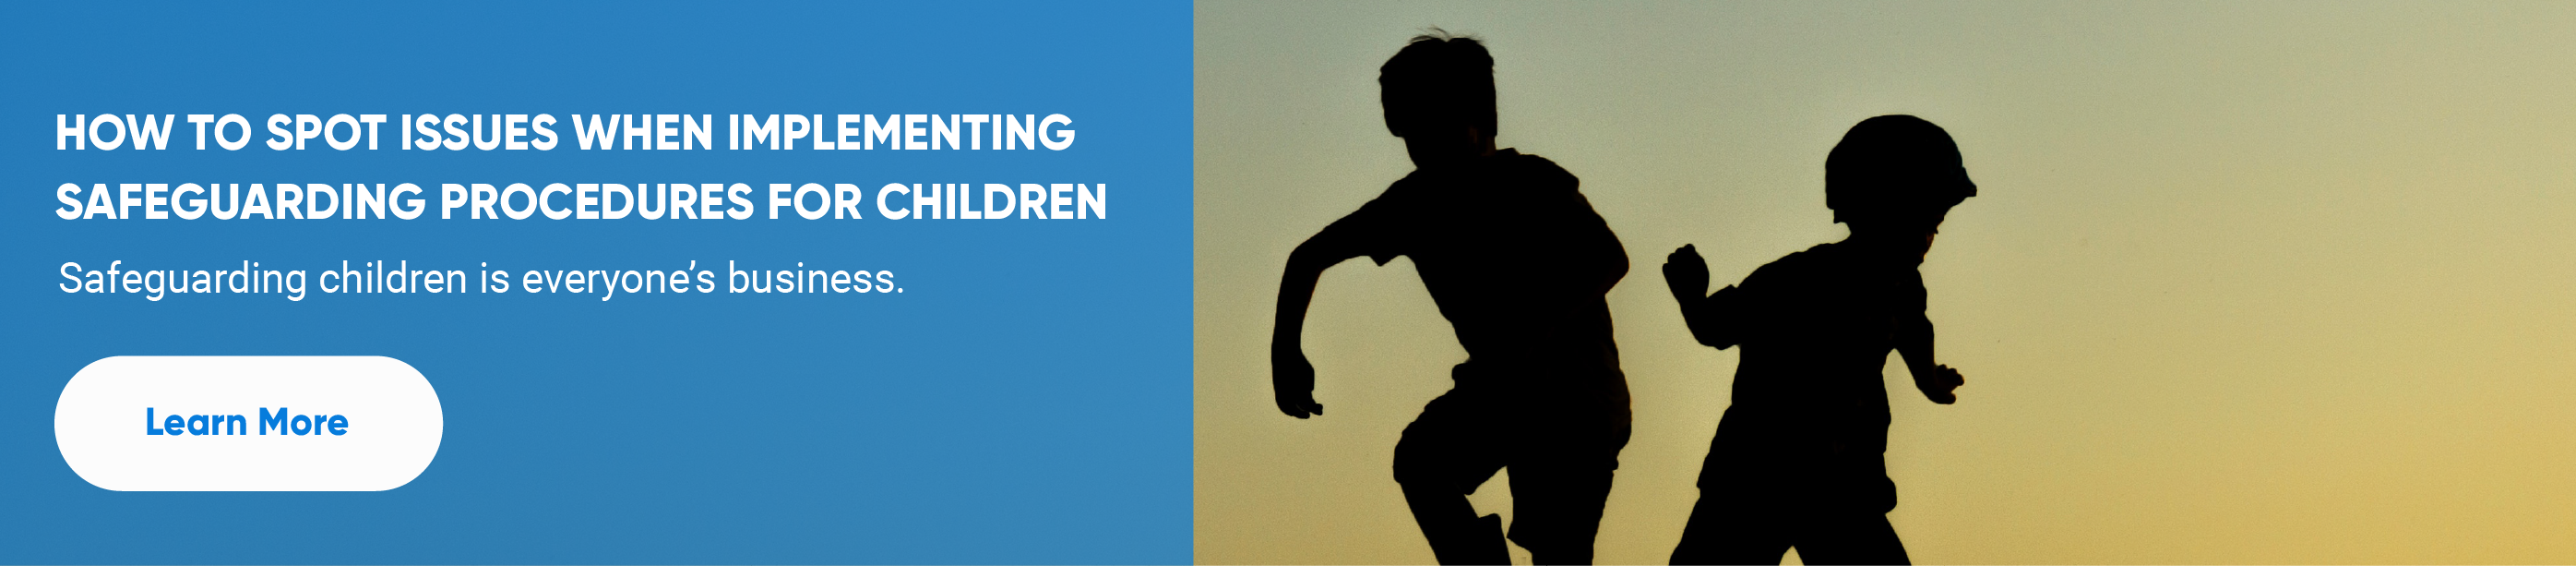 How to spot issues when implementing safeguarding procedures for children